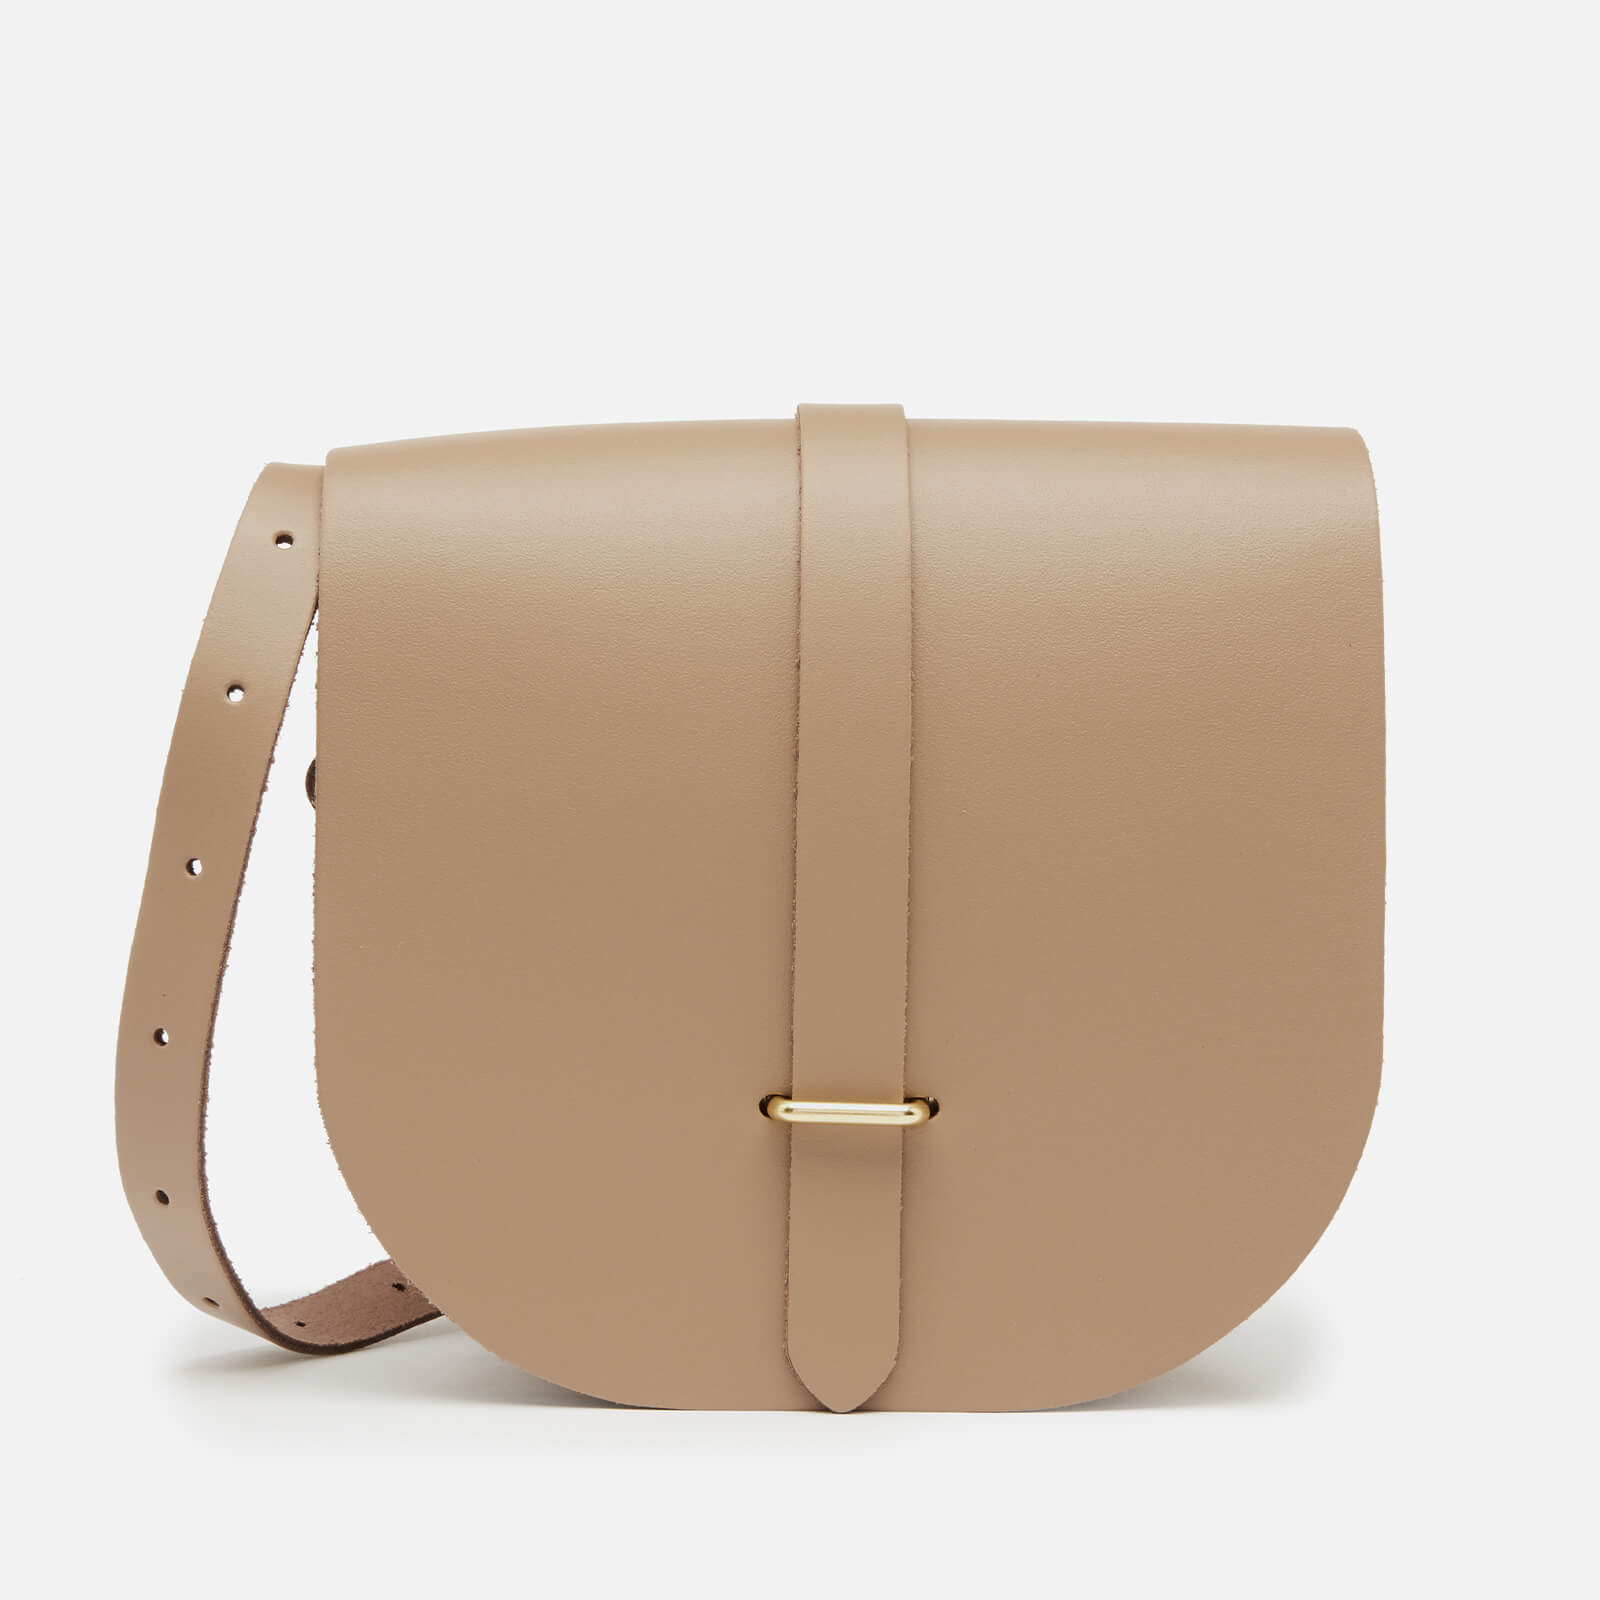 The Cambridge Satchel Company Women's Saddle Bag - Putty